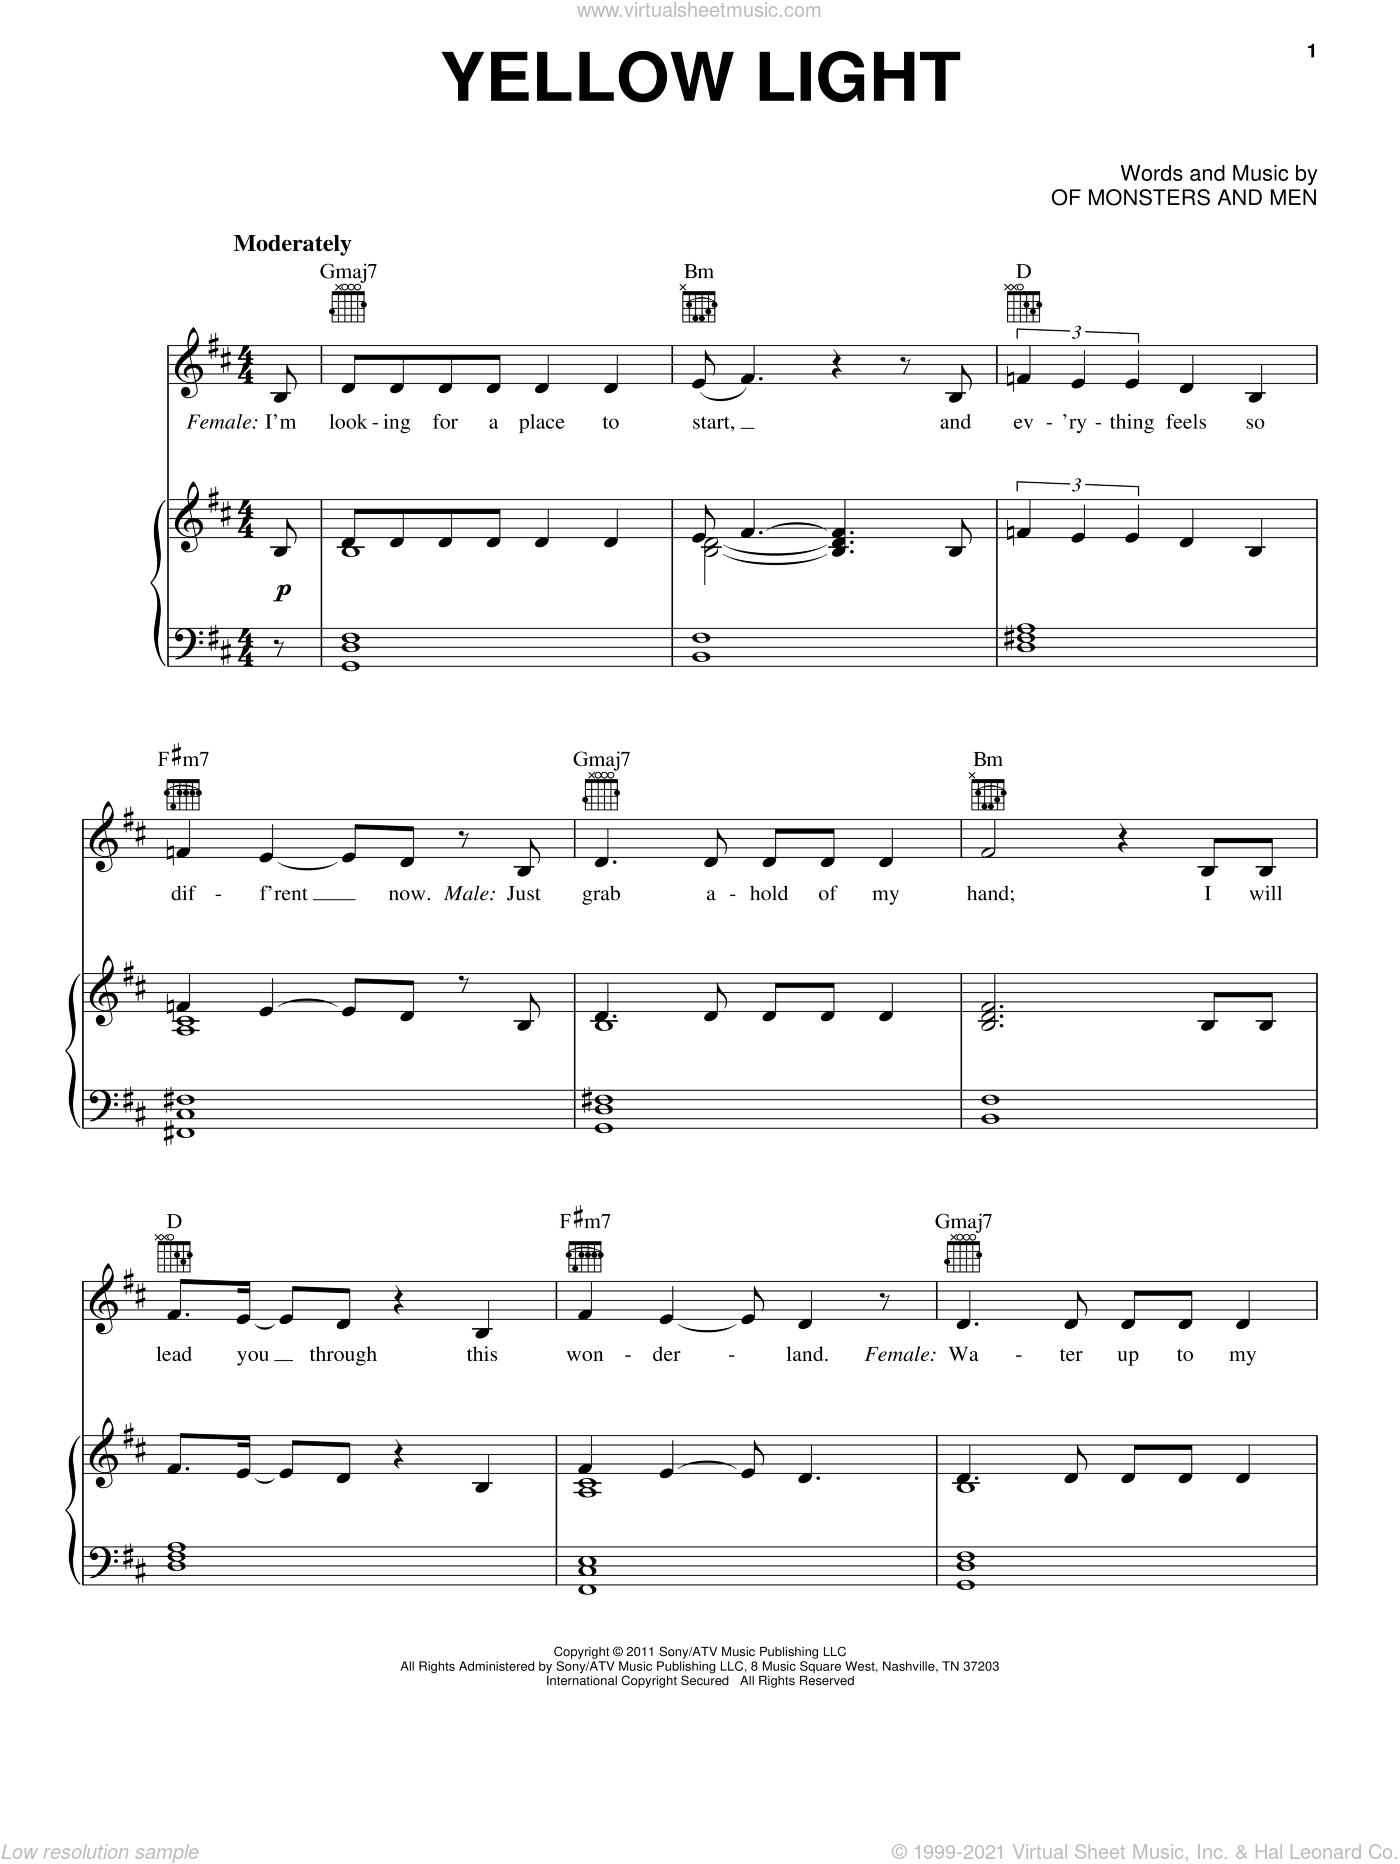 Yellow Light sheet music for voice, piano or guitar by Of Monsters And Men